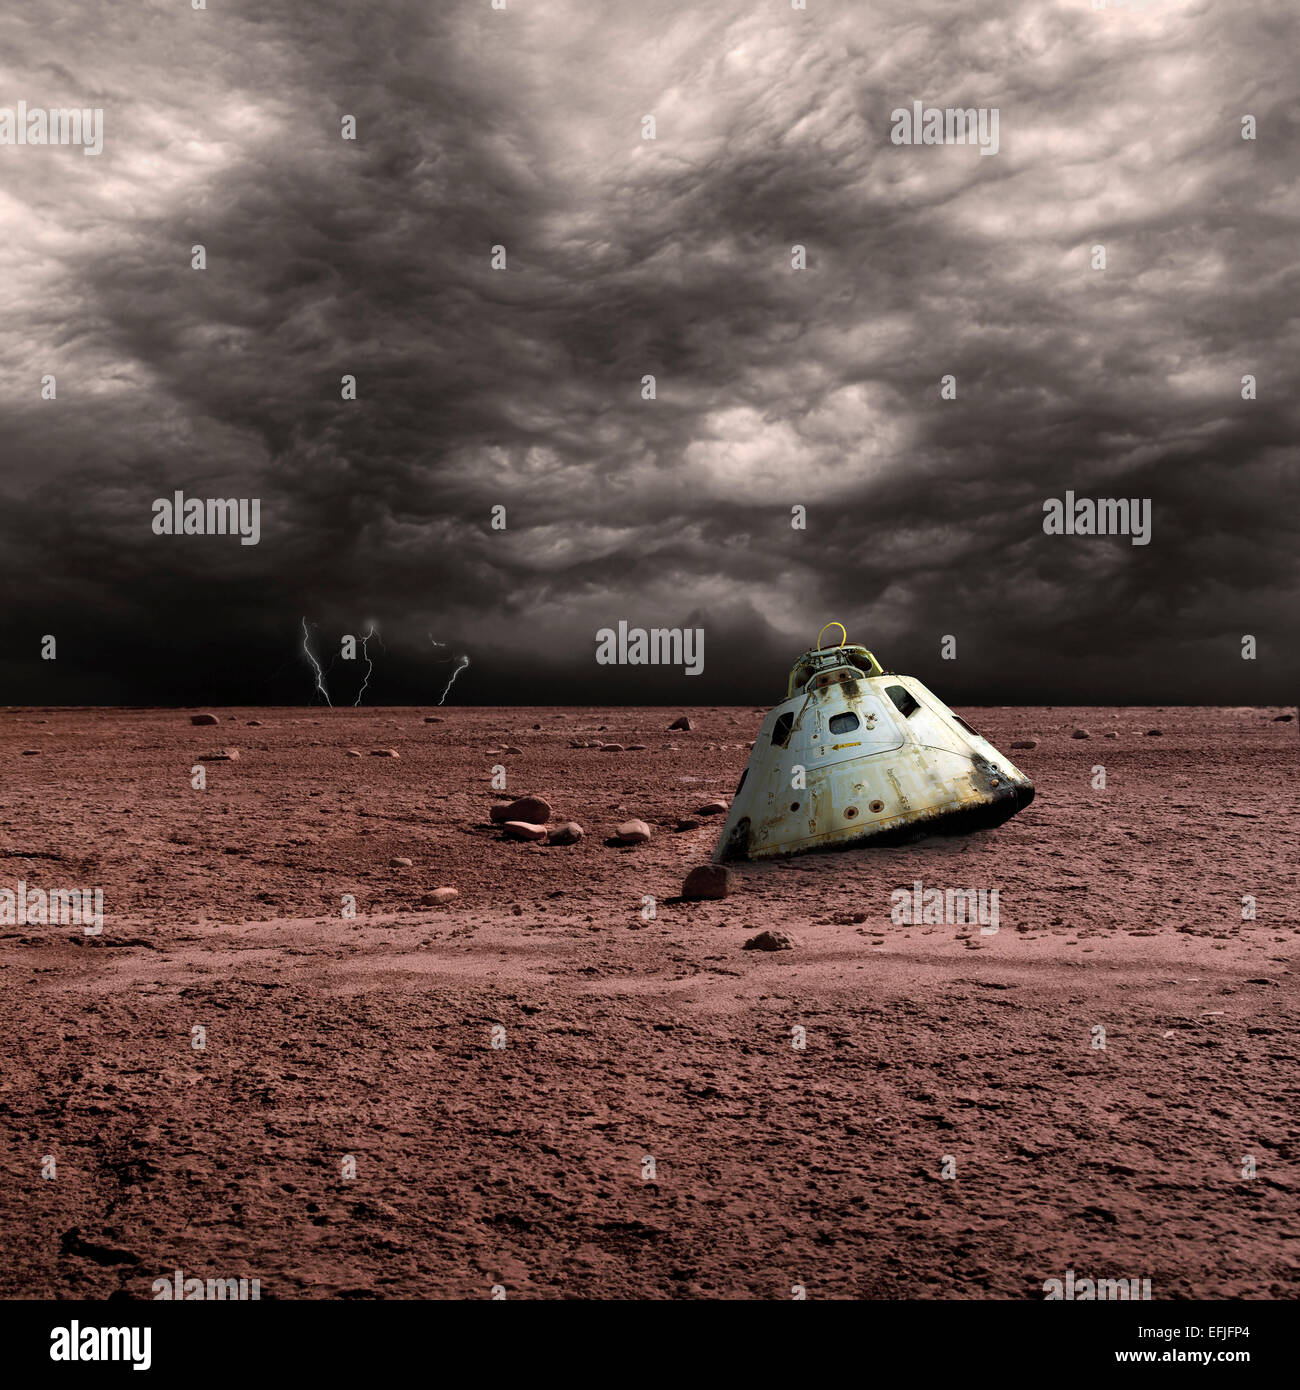 A scorched space capsule lies abandoned on a barren world. Storm clouds and lightning are in the background. - Stock Image